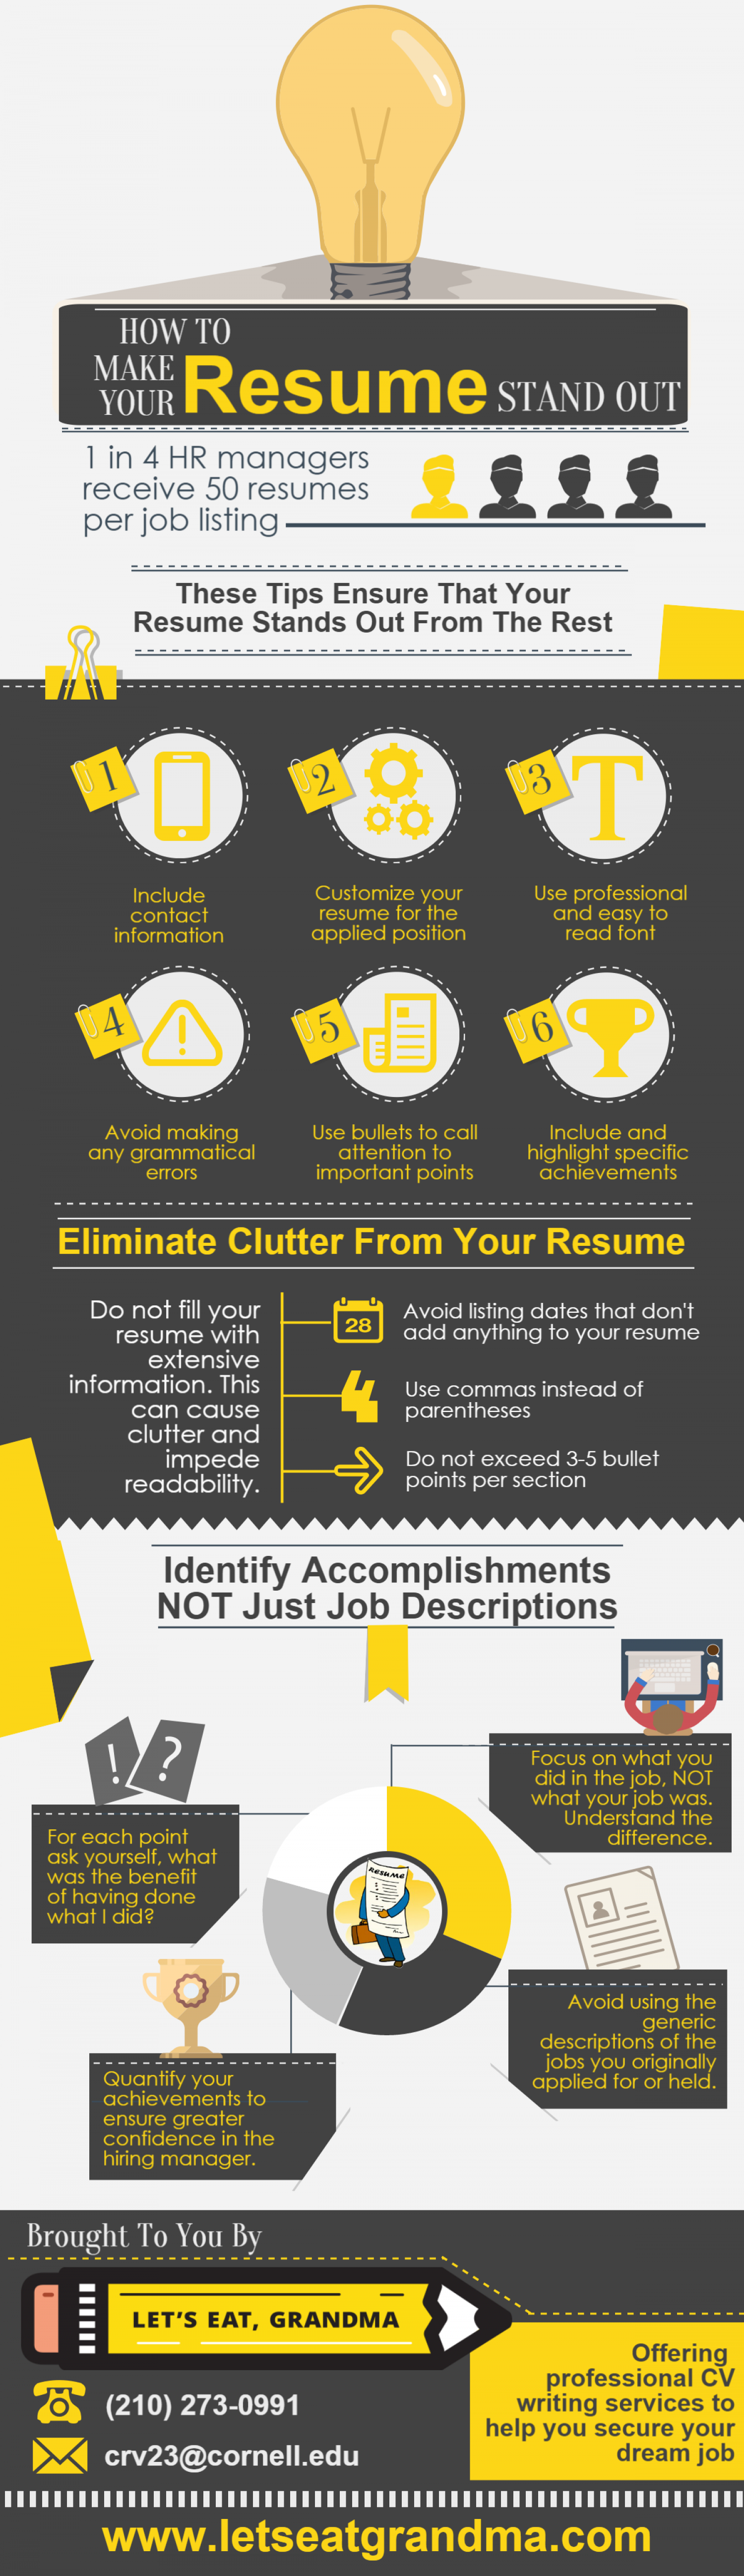 How To Write A Resume That Stands Out | How To Make Your Resume Stand Out Visual Ly